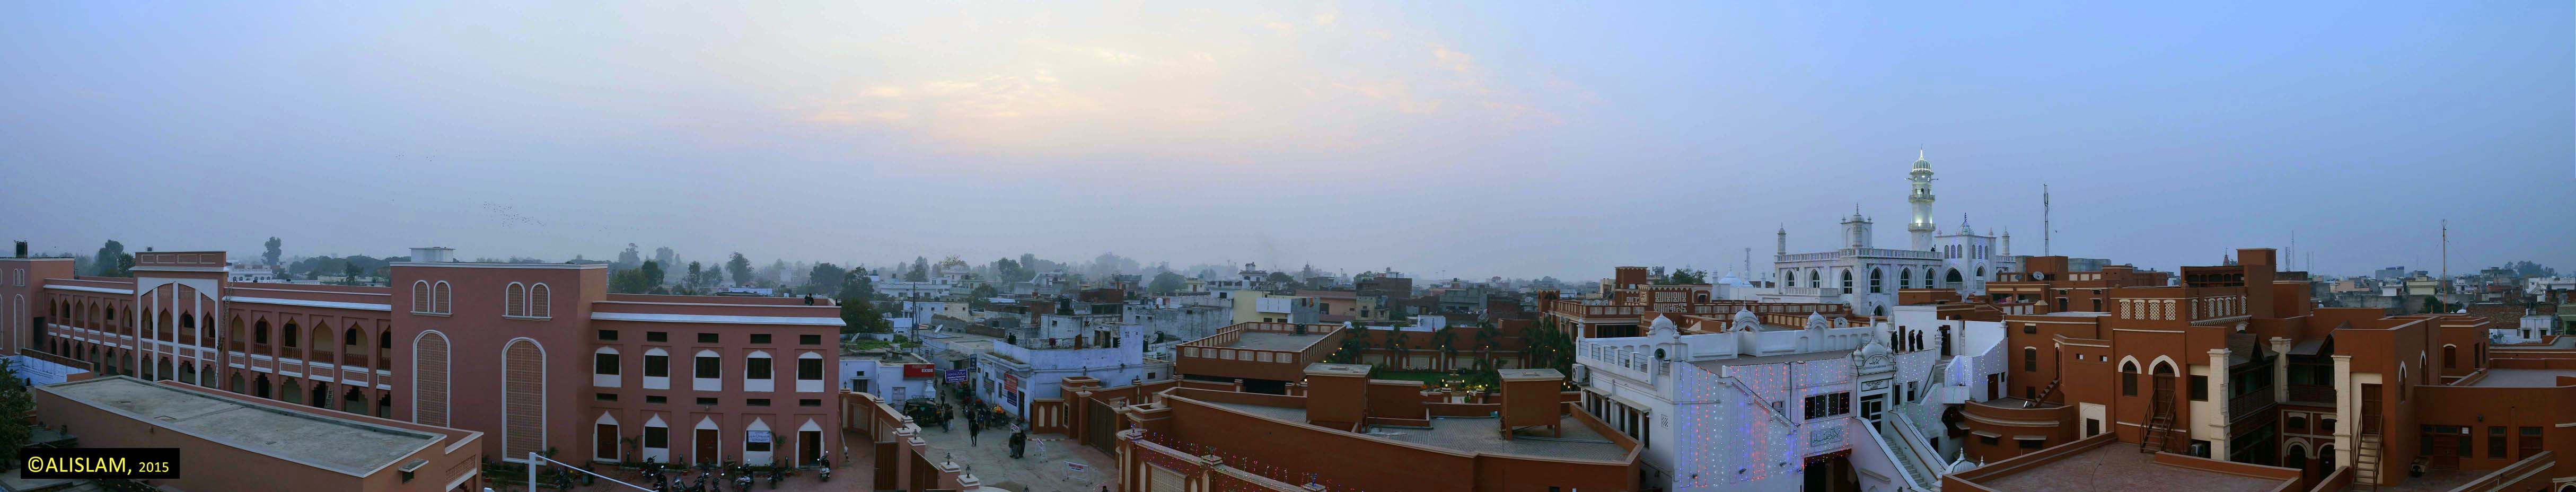 Panoramic view of Qadian